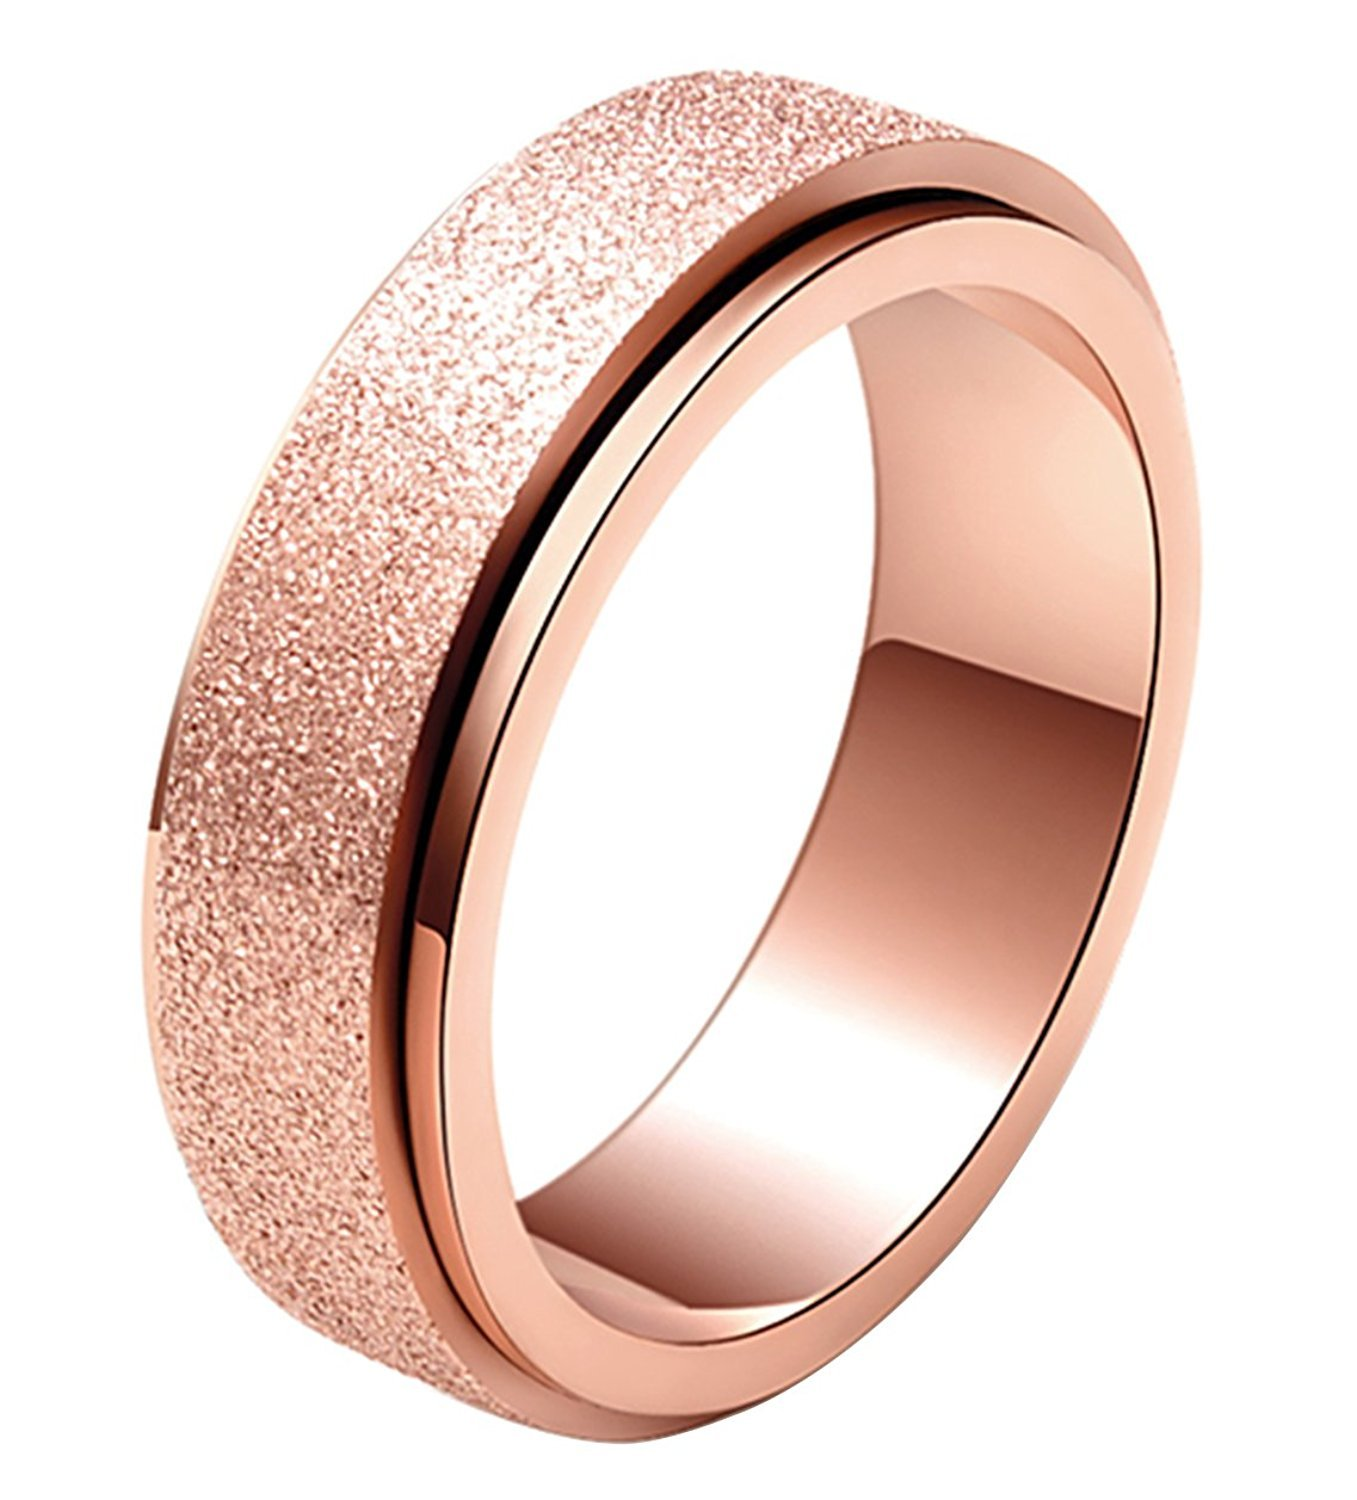 ALEXTINA Women's 6MM Fashion Stainless Steel Spinner Ring Sand Blast Finish (Rose Gold and Rainbow) 0510T2T007